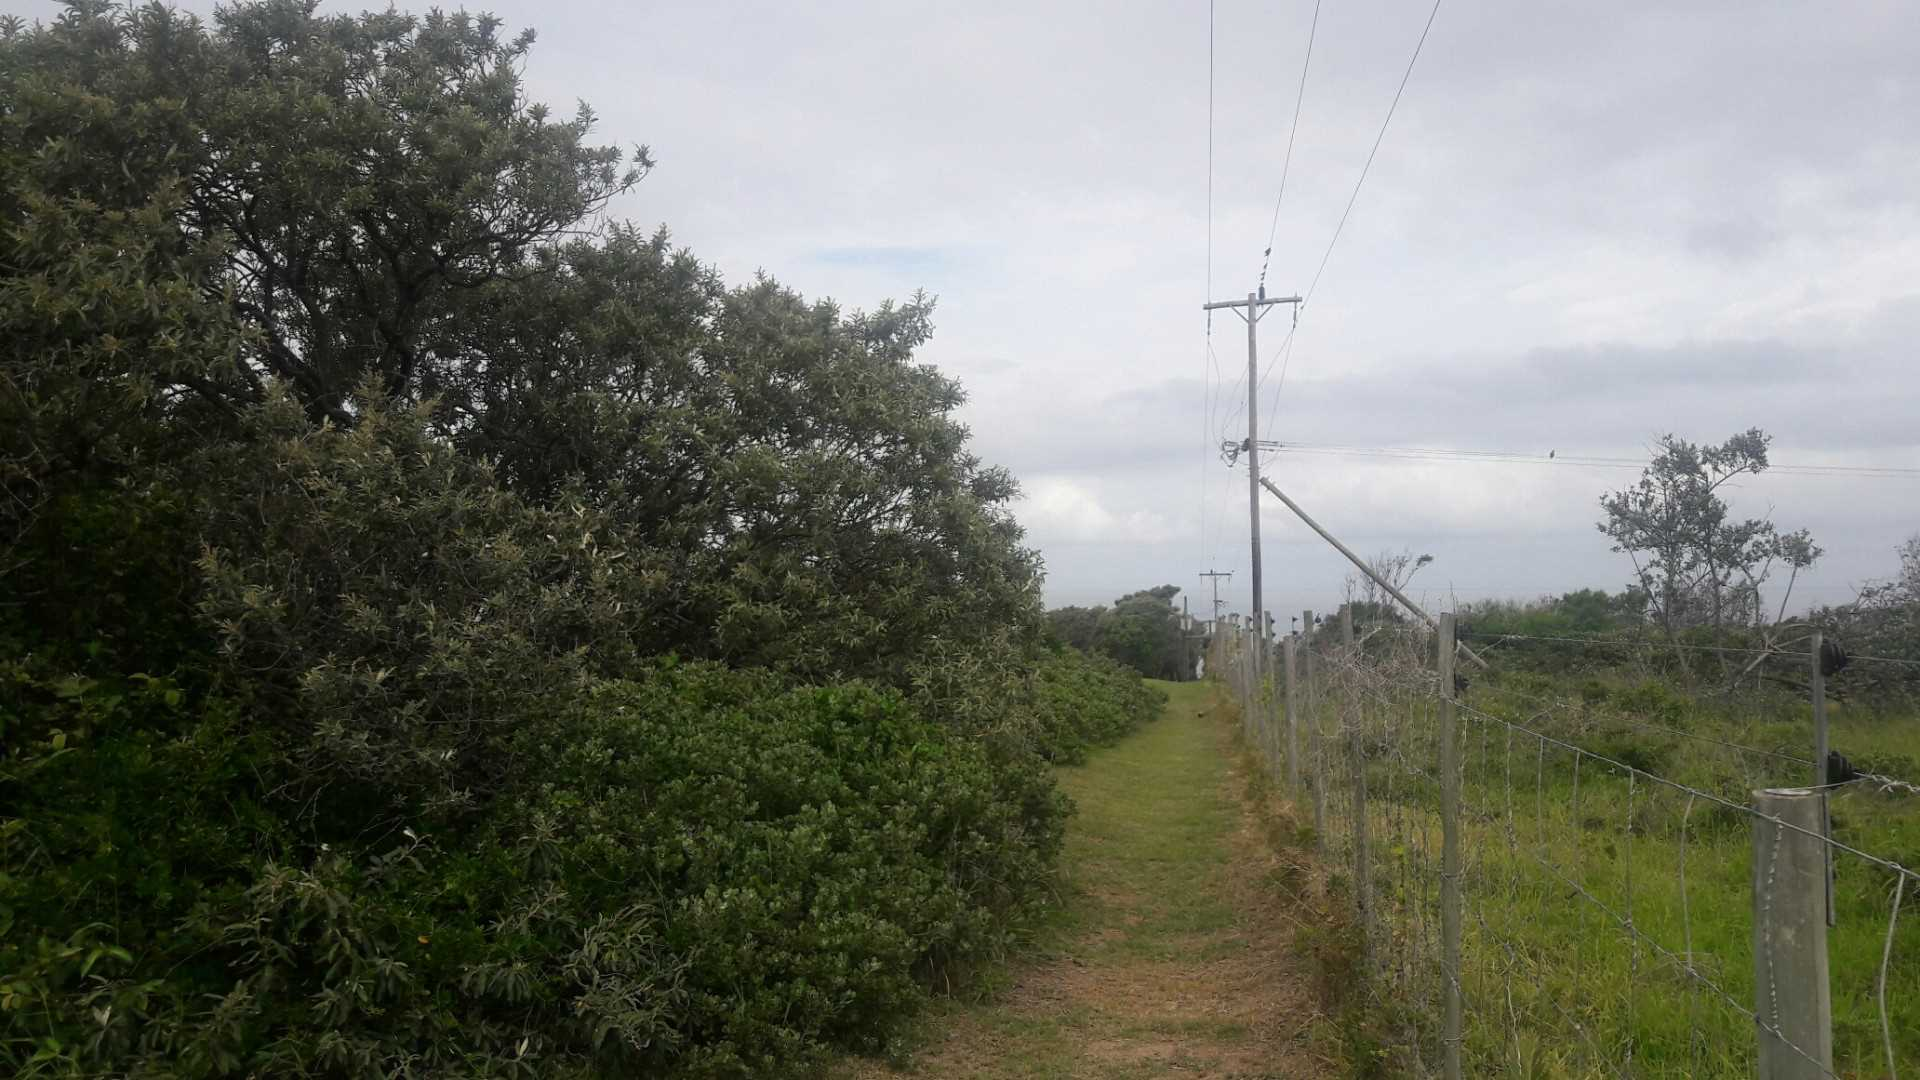 PLOT FROM THE BACK - BOUNDARY FENCE